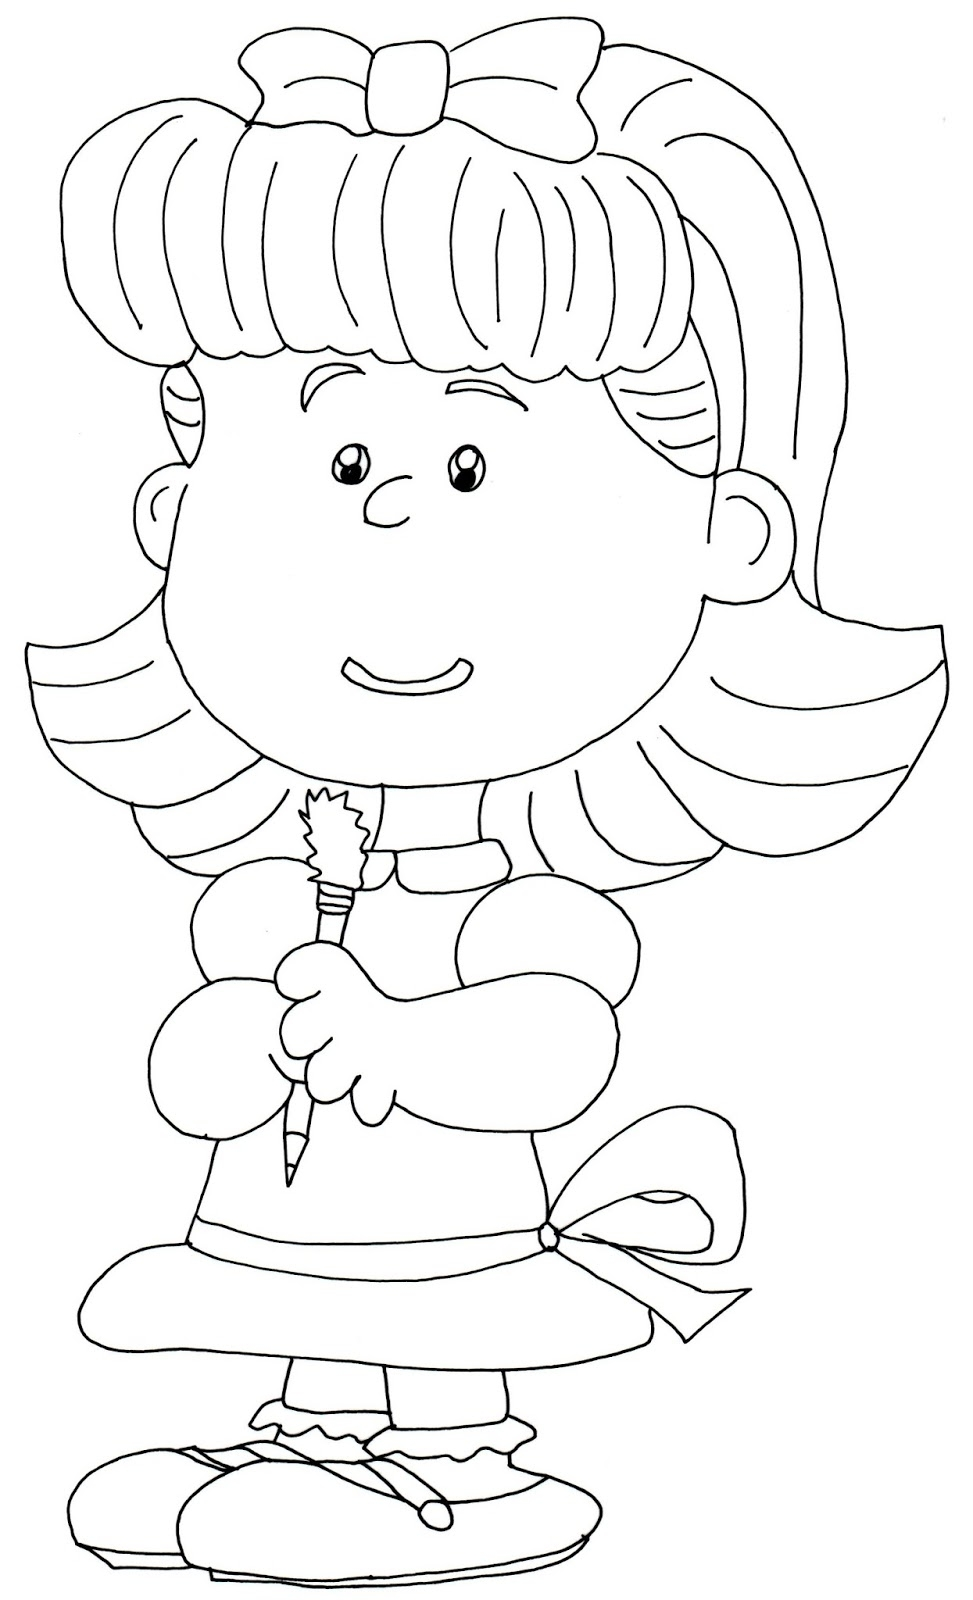 973x1600 Peanuts Coloring Pages Collections Free Coloring Pages